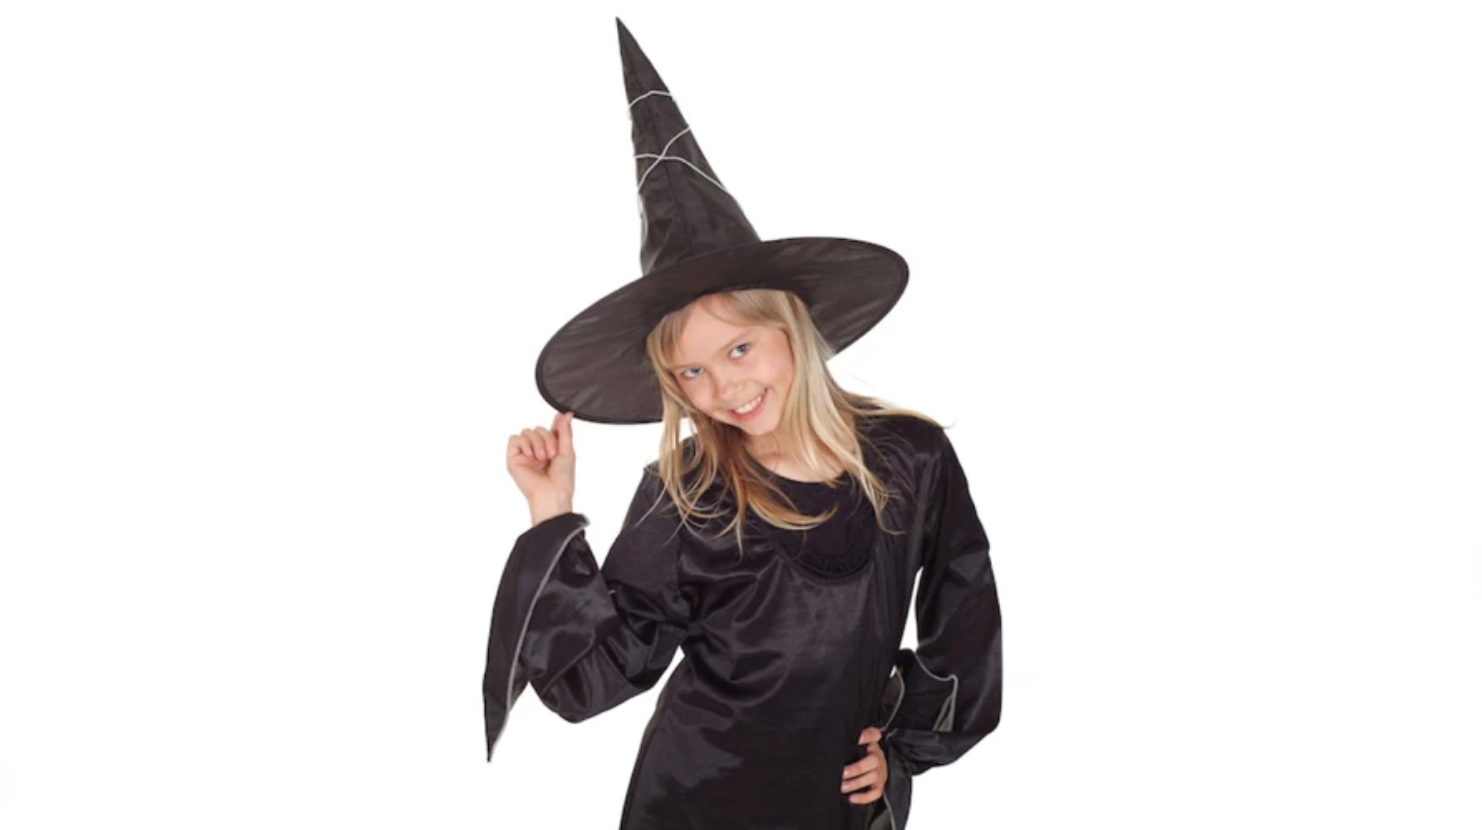 girl wearing a witch costume